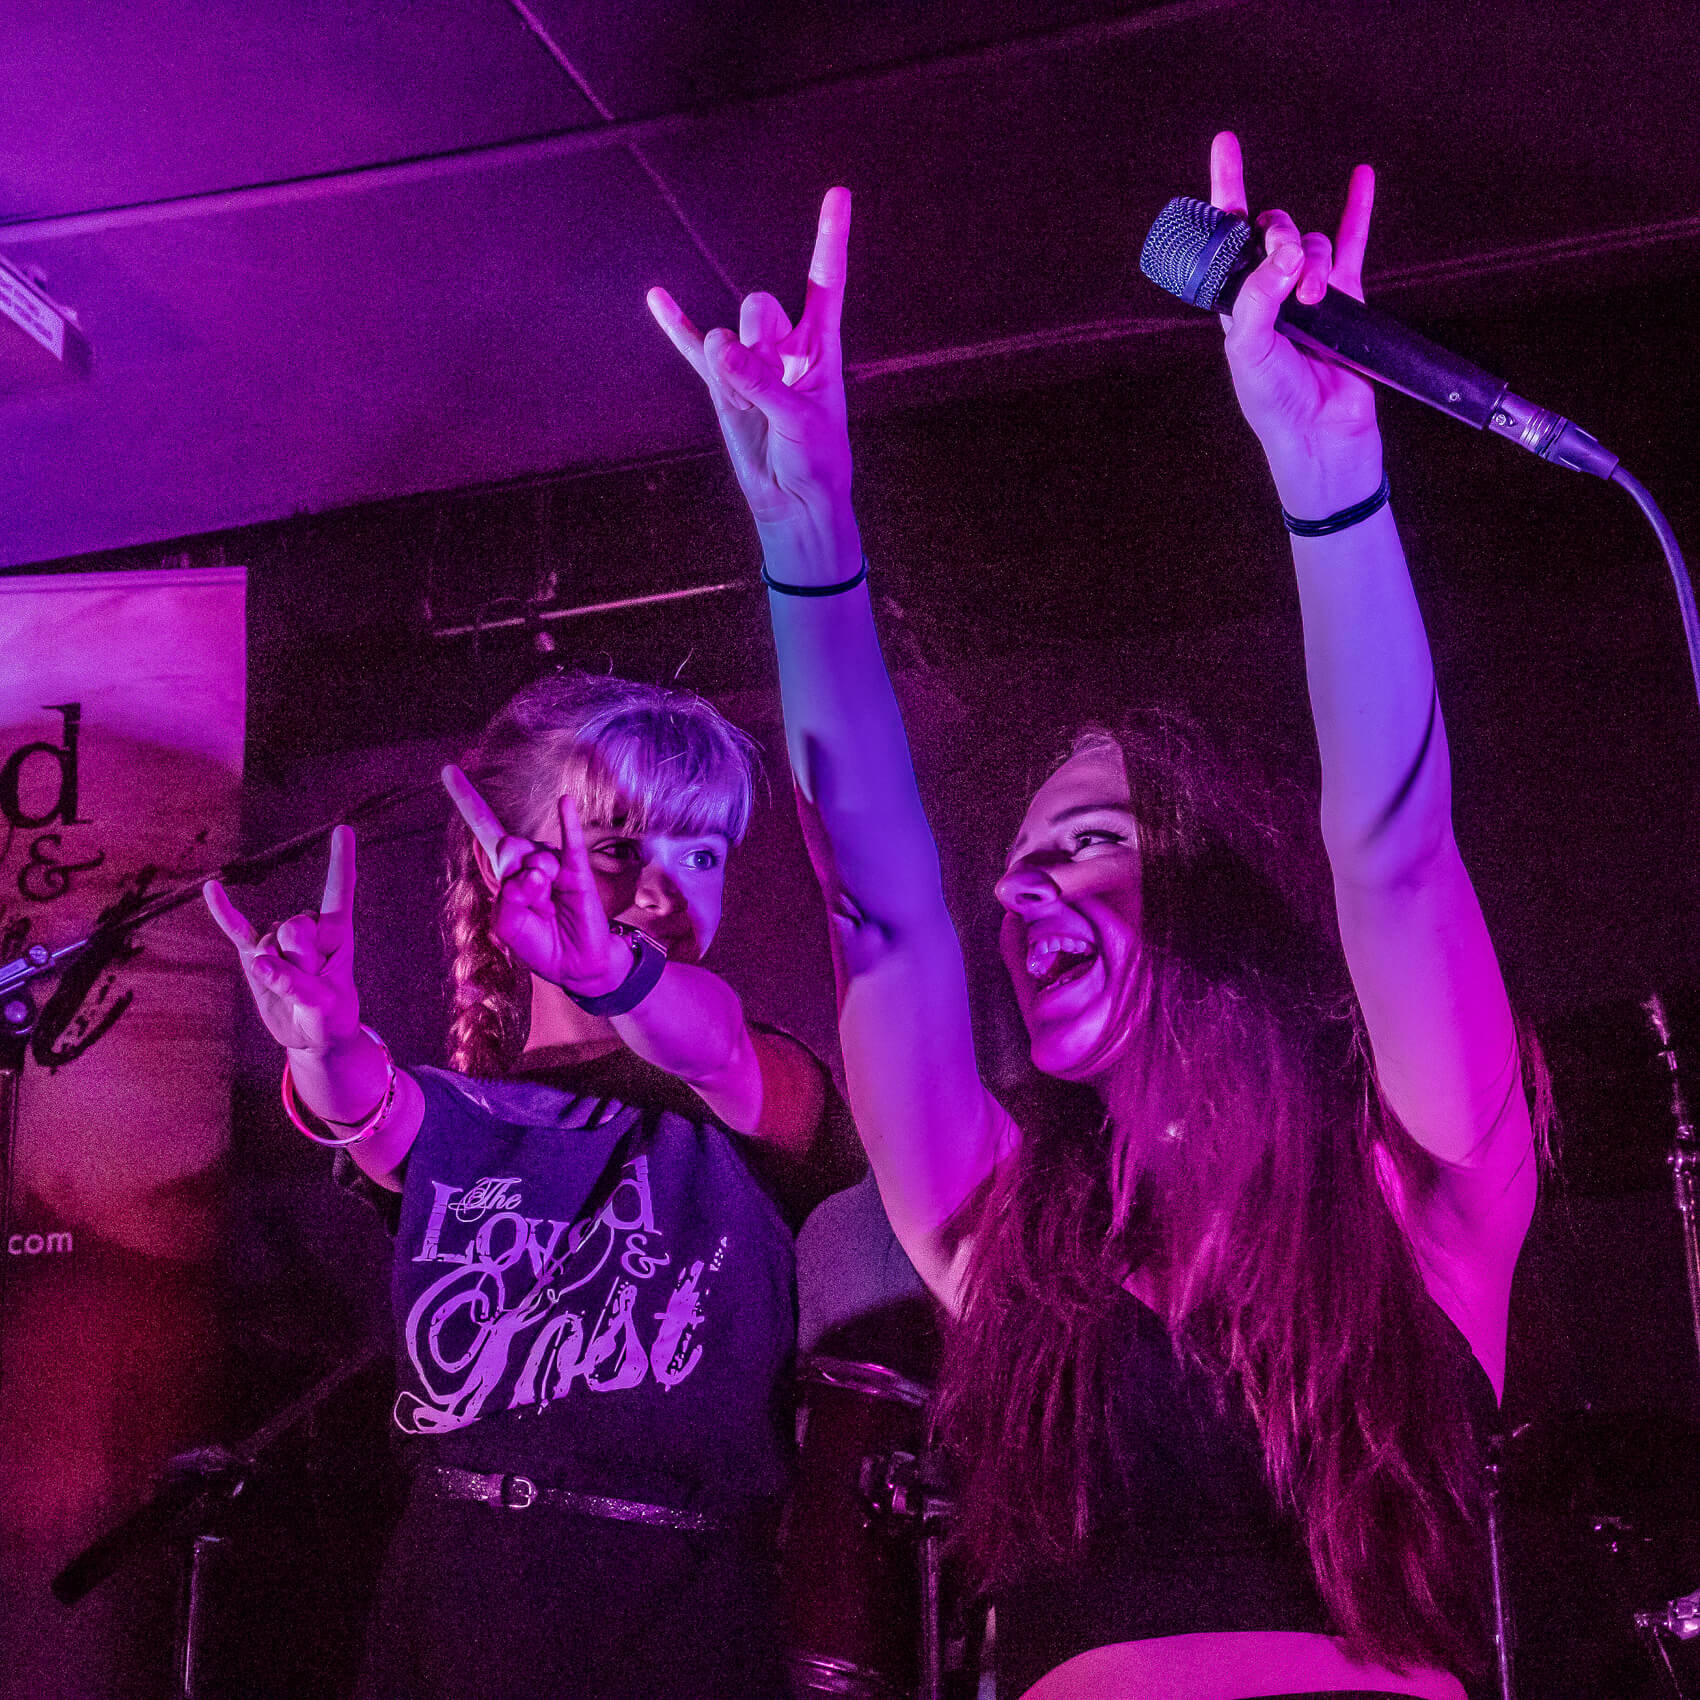 A colour photograph of a smiling young girl stood next to a kneeling and laughing Jordan Quinn (Lead singer of The Loved & Lost) whilst they both make the Heavy Metal 'Devils Horns' sign with both hands on stage during The Worcester Music Festival 2017.